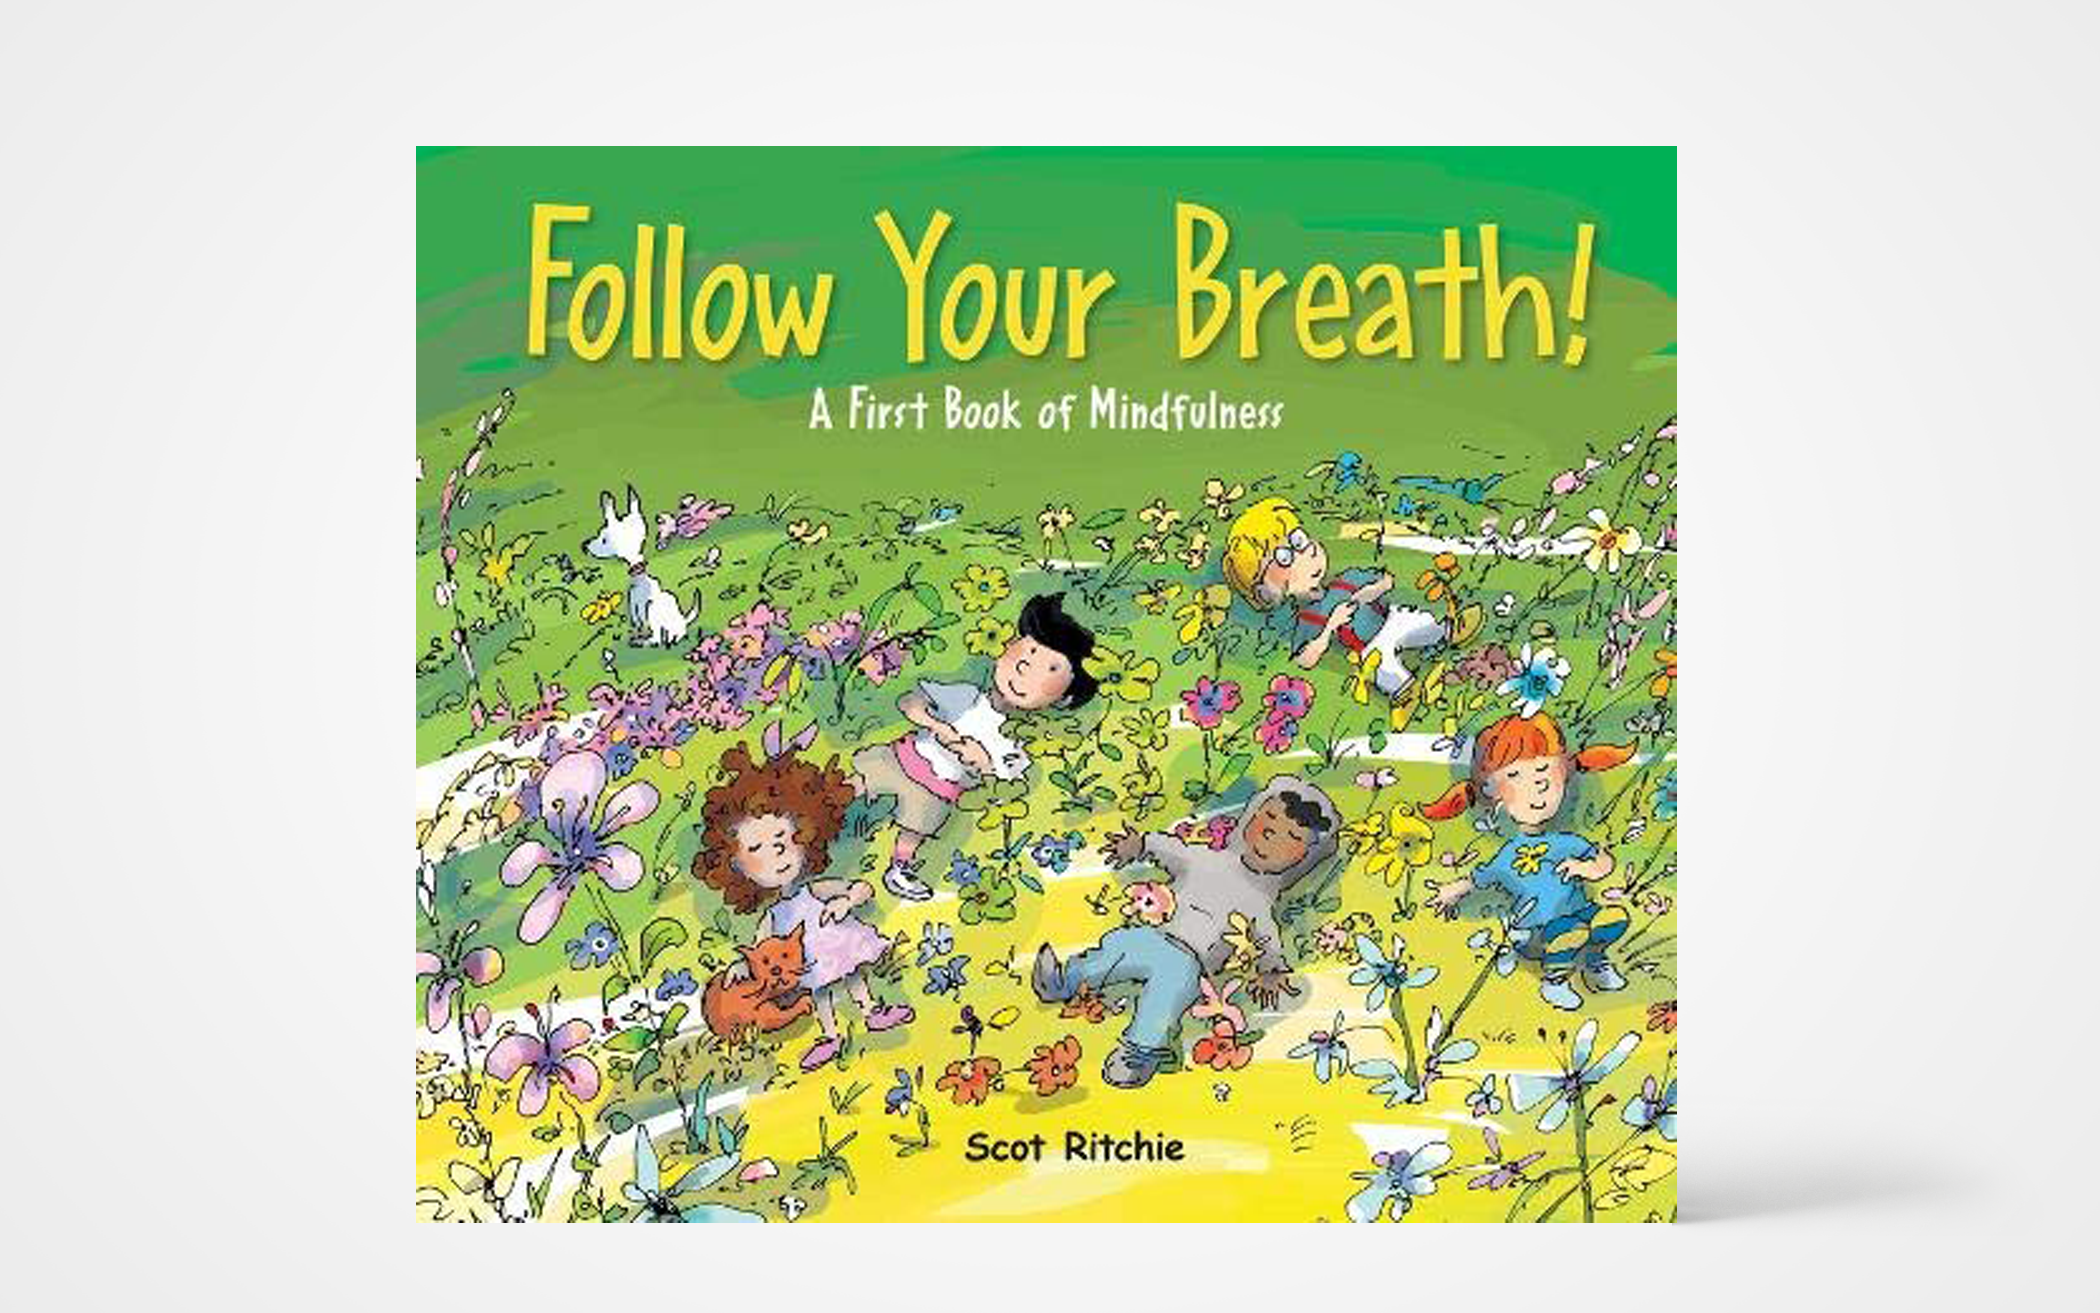 Follow Your Breath! A First Book of Mindfulness